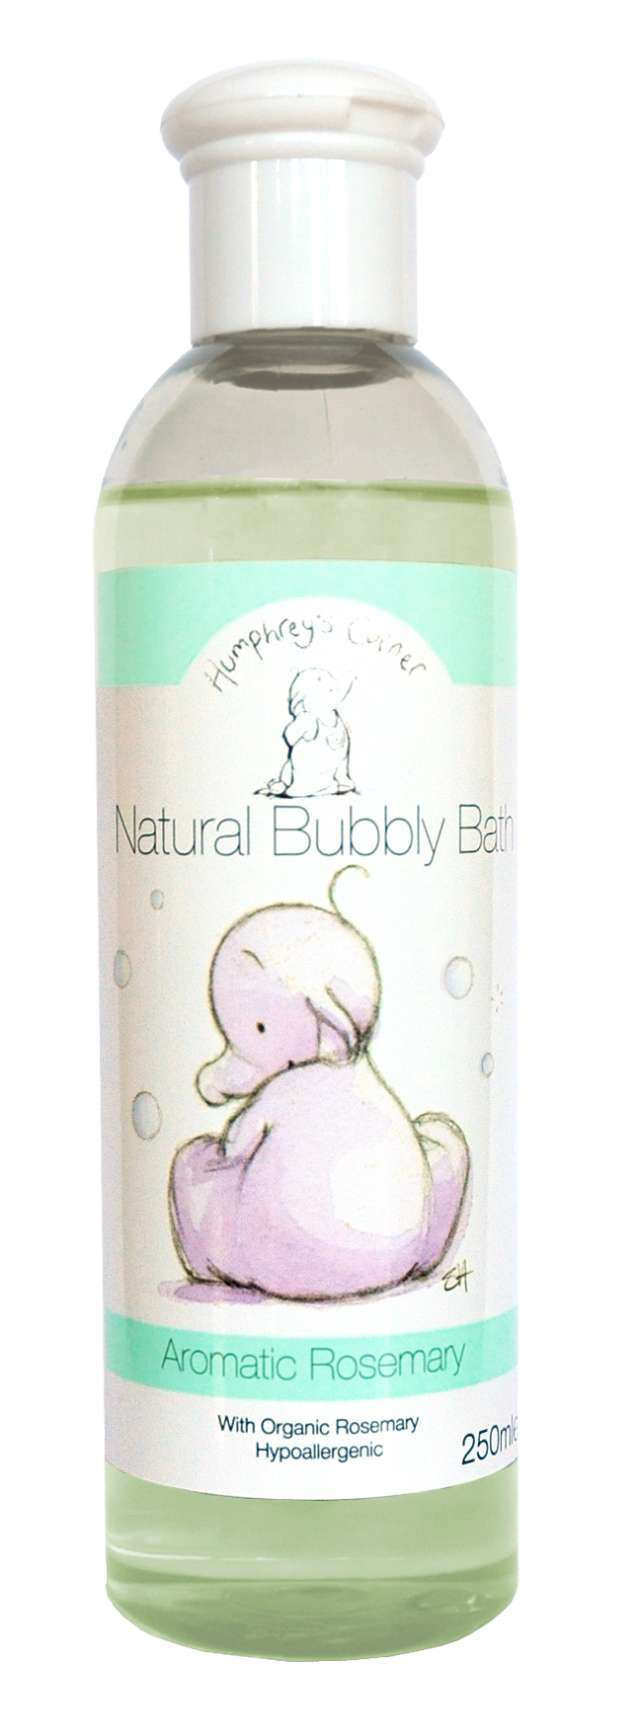 Humphrey´s Natural Bubbly Bath Aromatic Rosemary